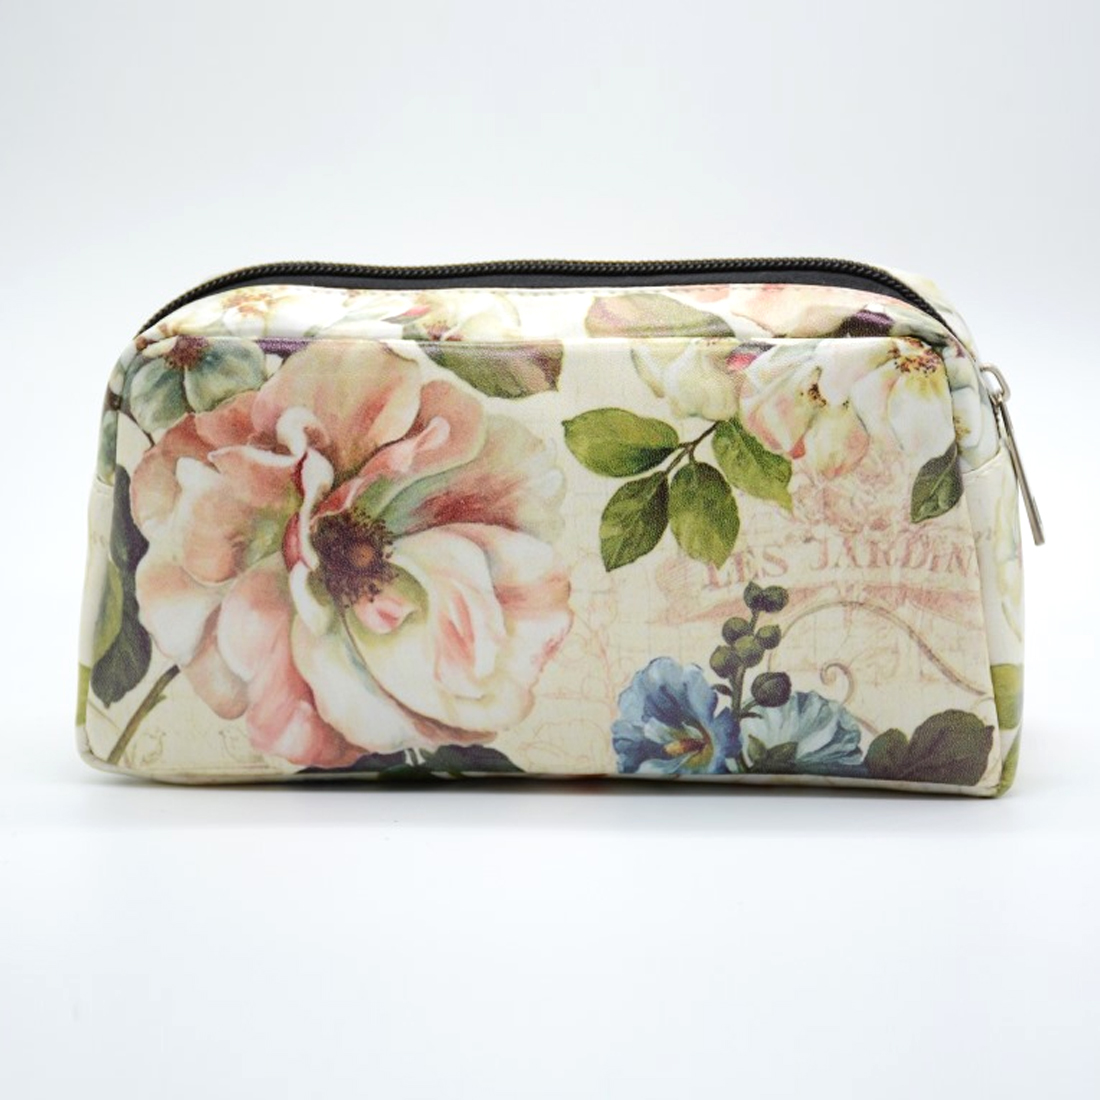 ARESLAND travel Cosmetic Bag organizer women makeup case bag Digital Printing Flower Pattern Travel Toiletries Wash Storage Bag new 2018 portable travel cosmetic bag wash toiletries makeup organizer storage case purse pouch hot sales